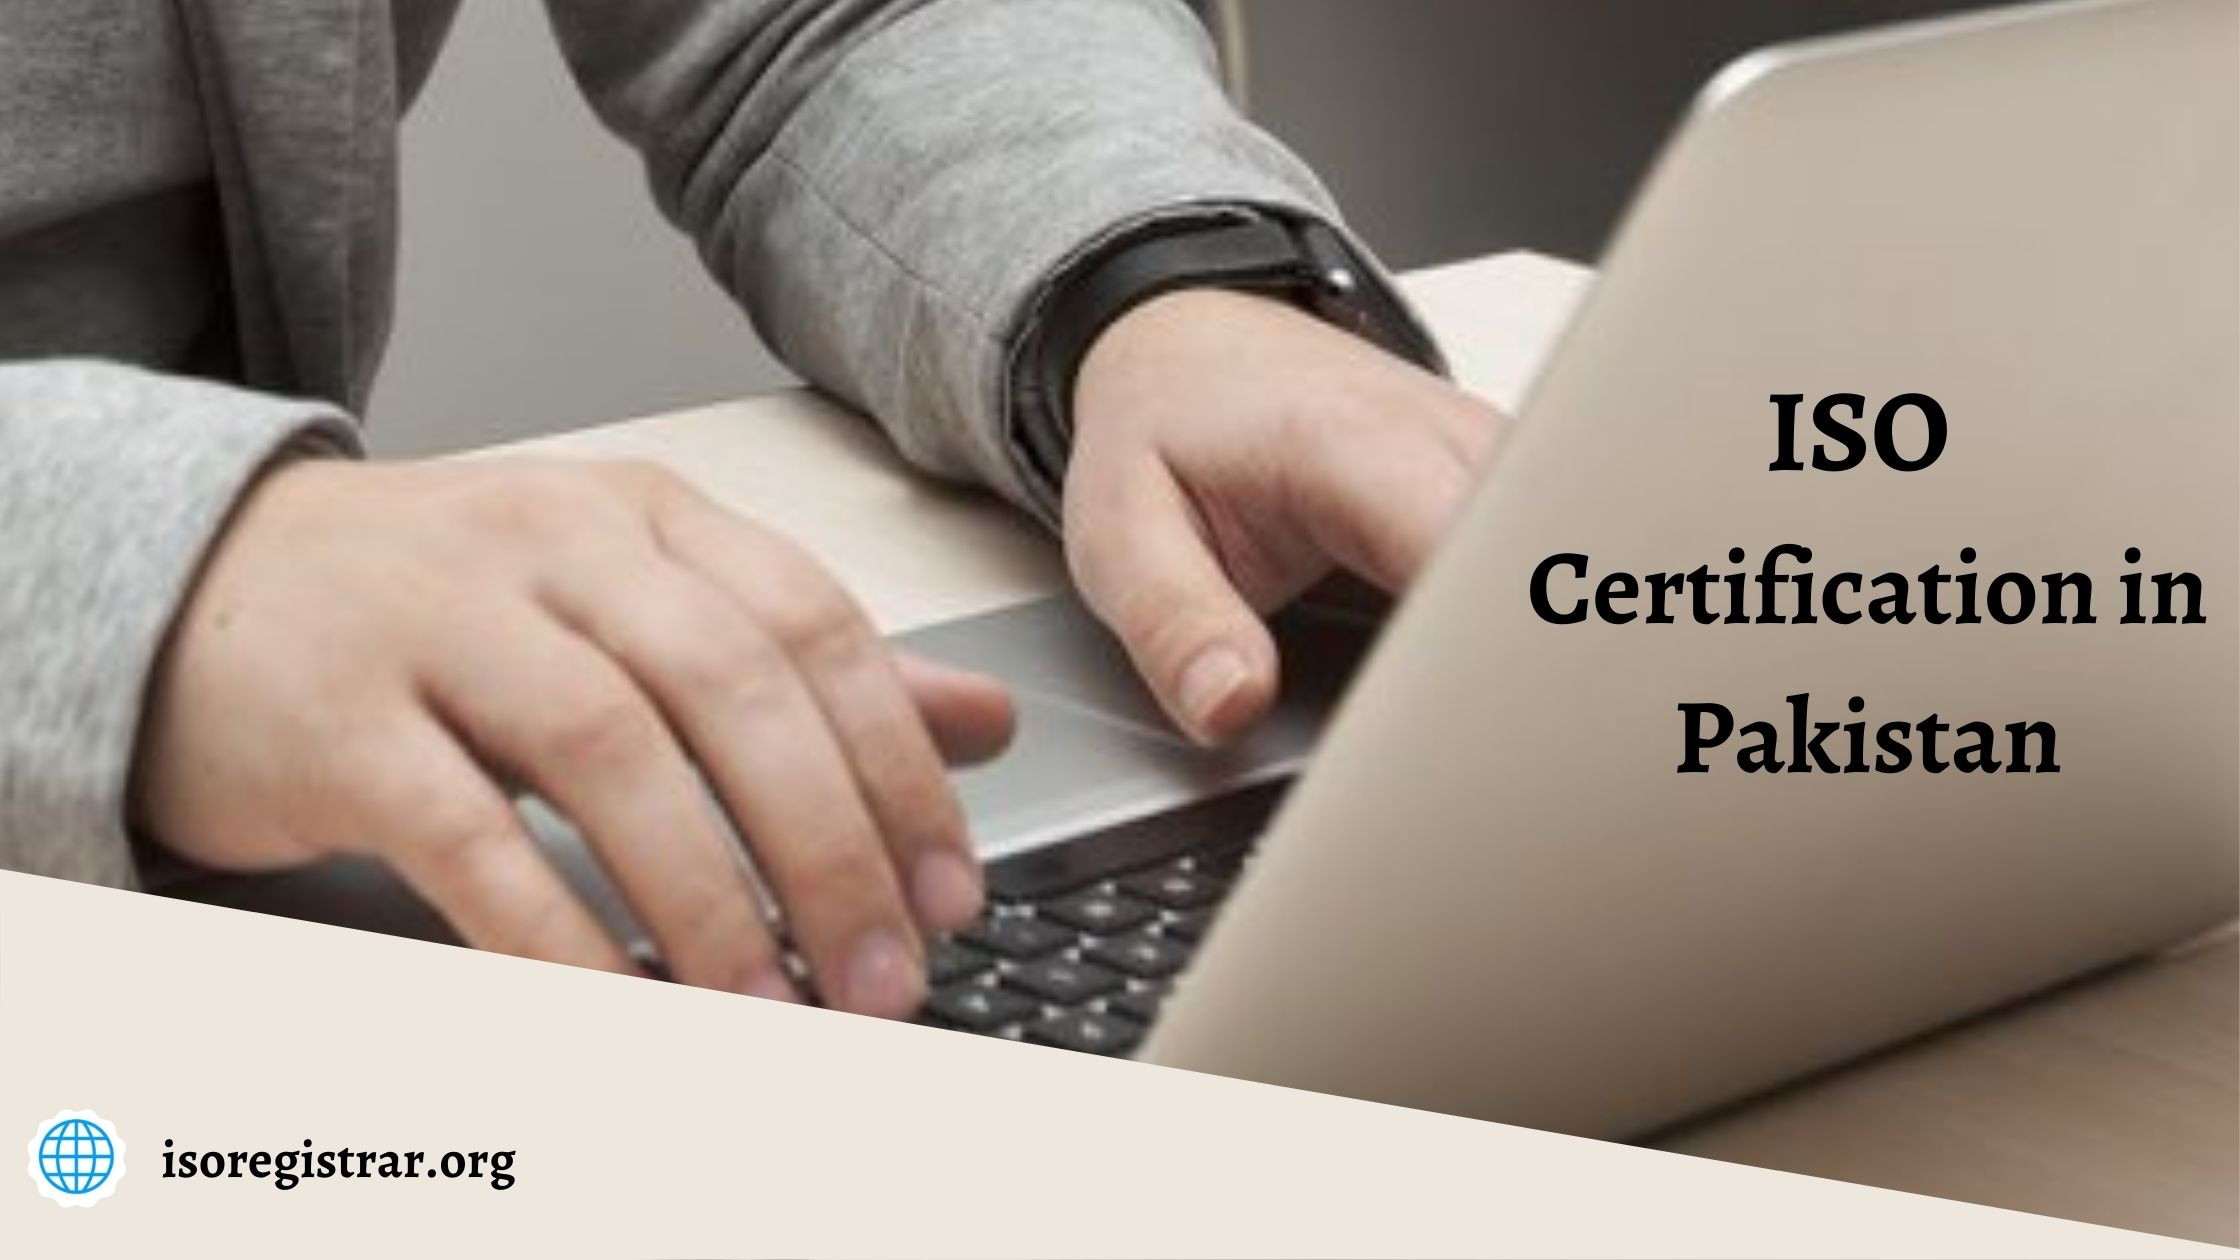 ISO Certification in Pakistan - ISO Certification Bodies